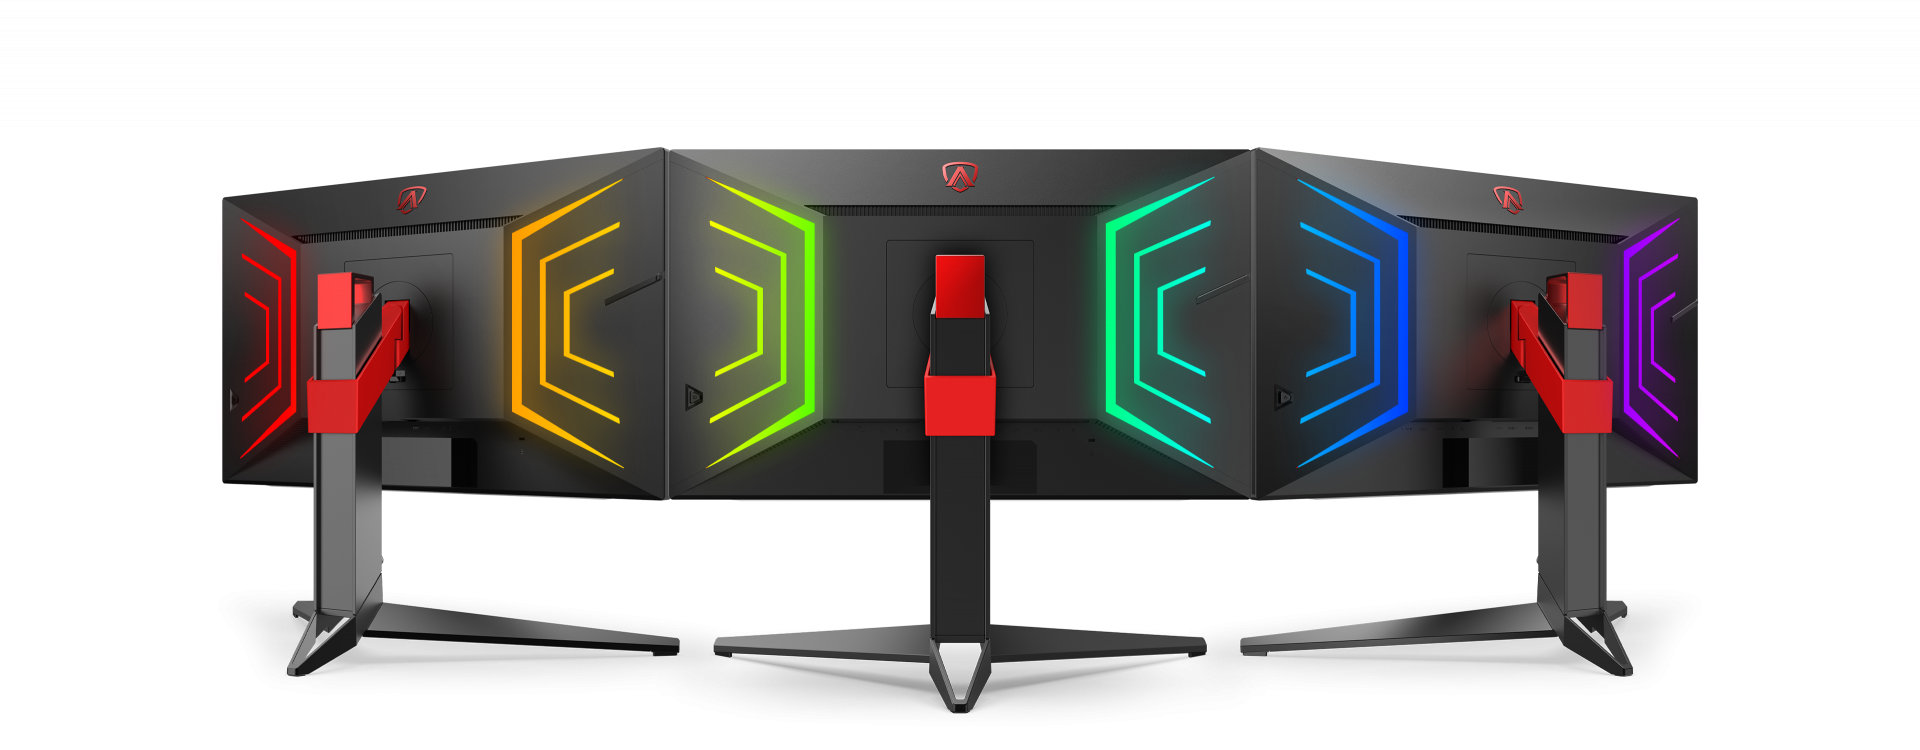 AGON_PRO_LIGHT_FX_FW_AG274FZ_FRONT.png